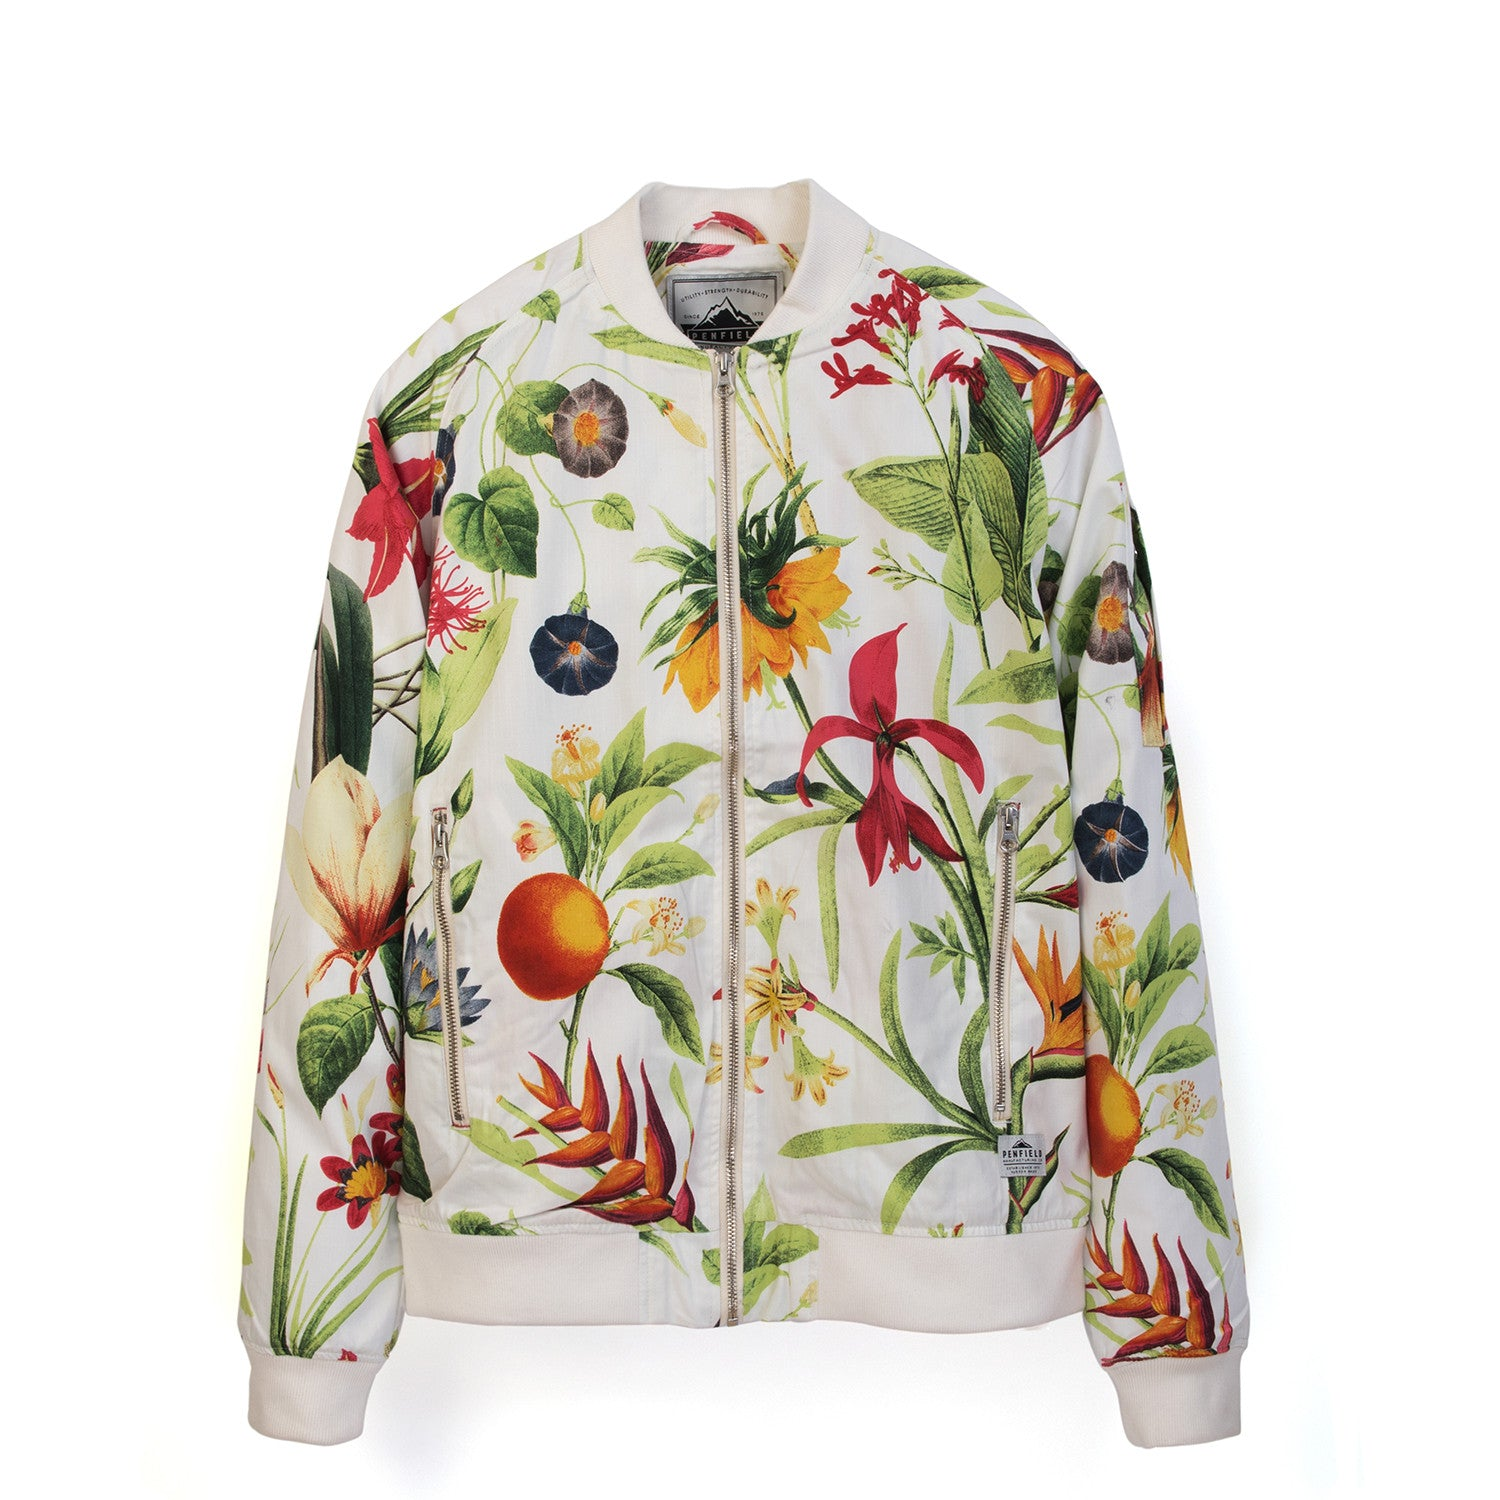 Penfield Mens Okenfield Botanical Jacket White